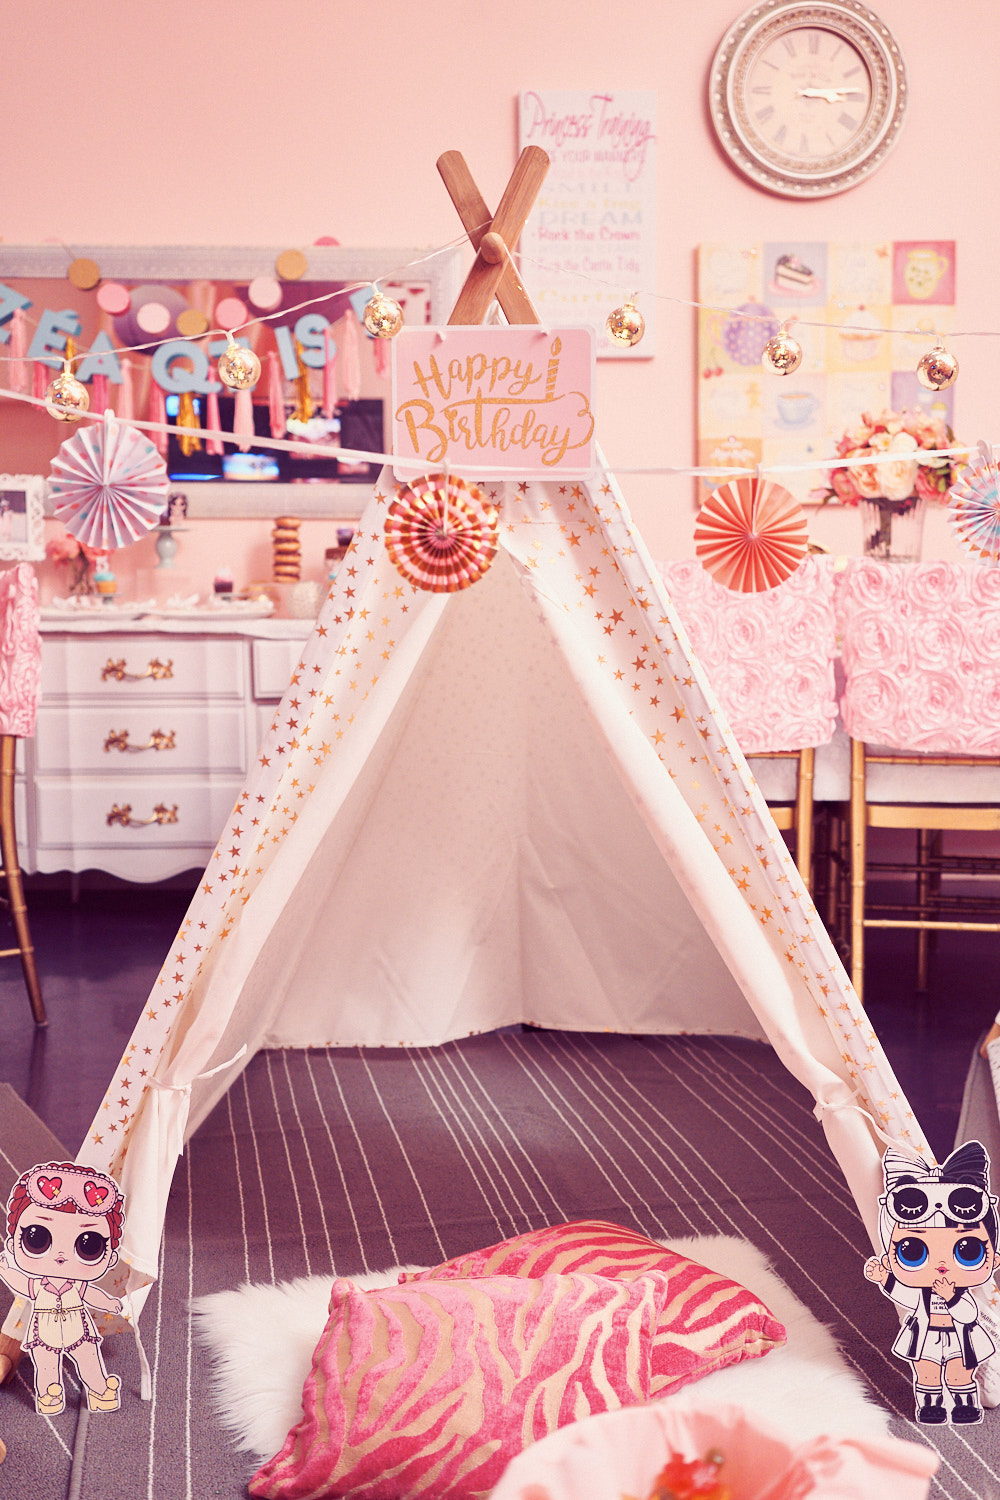 The teepee set up where kids can sit and enjoy the matinee movie with popcorns and cupcakes.